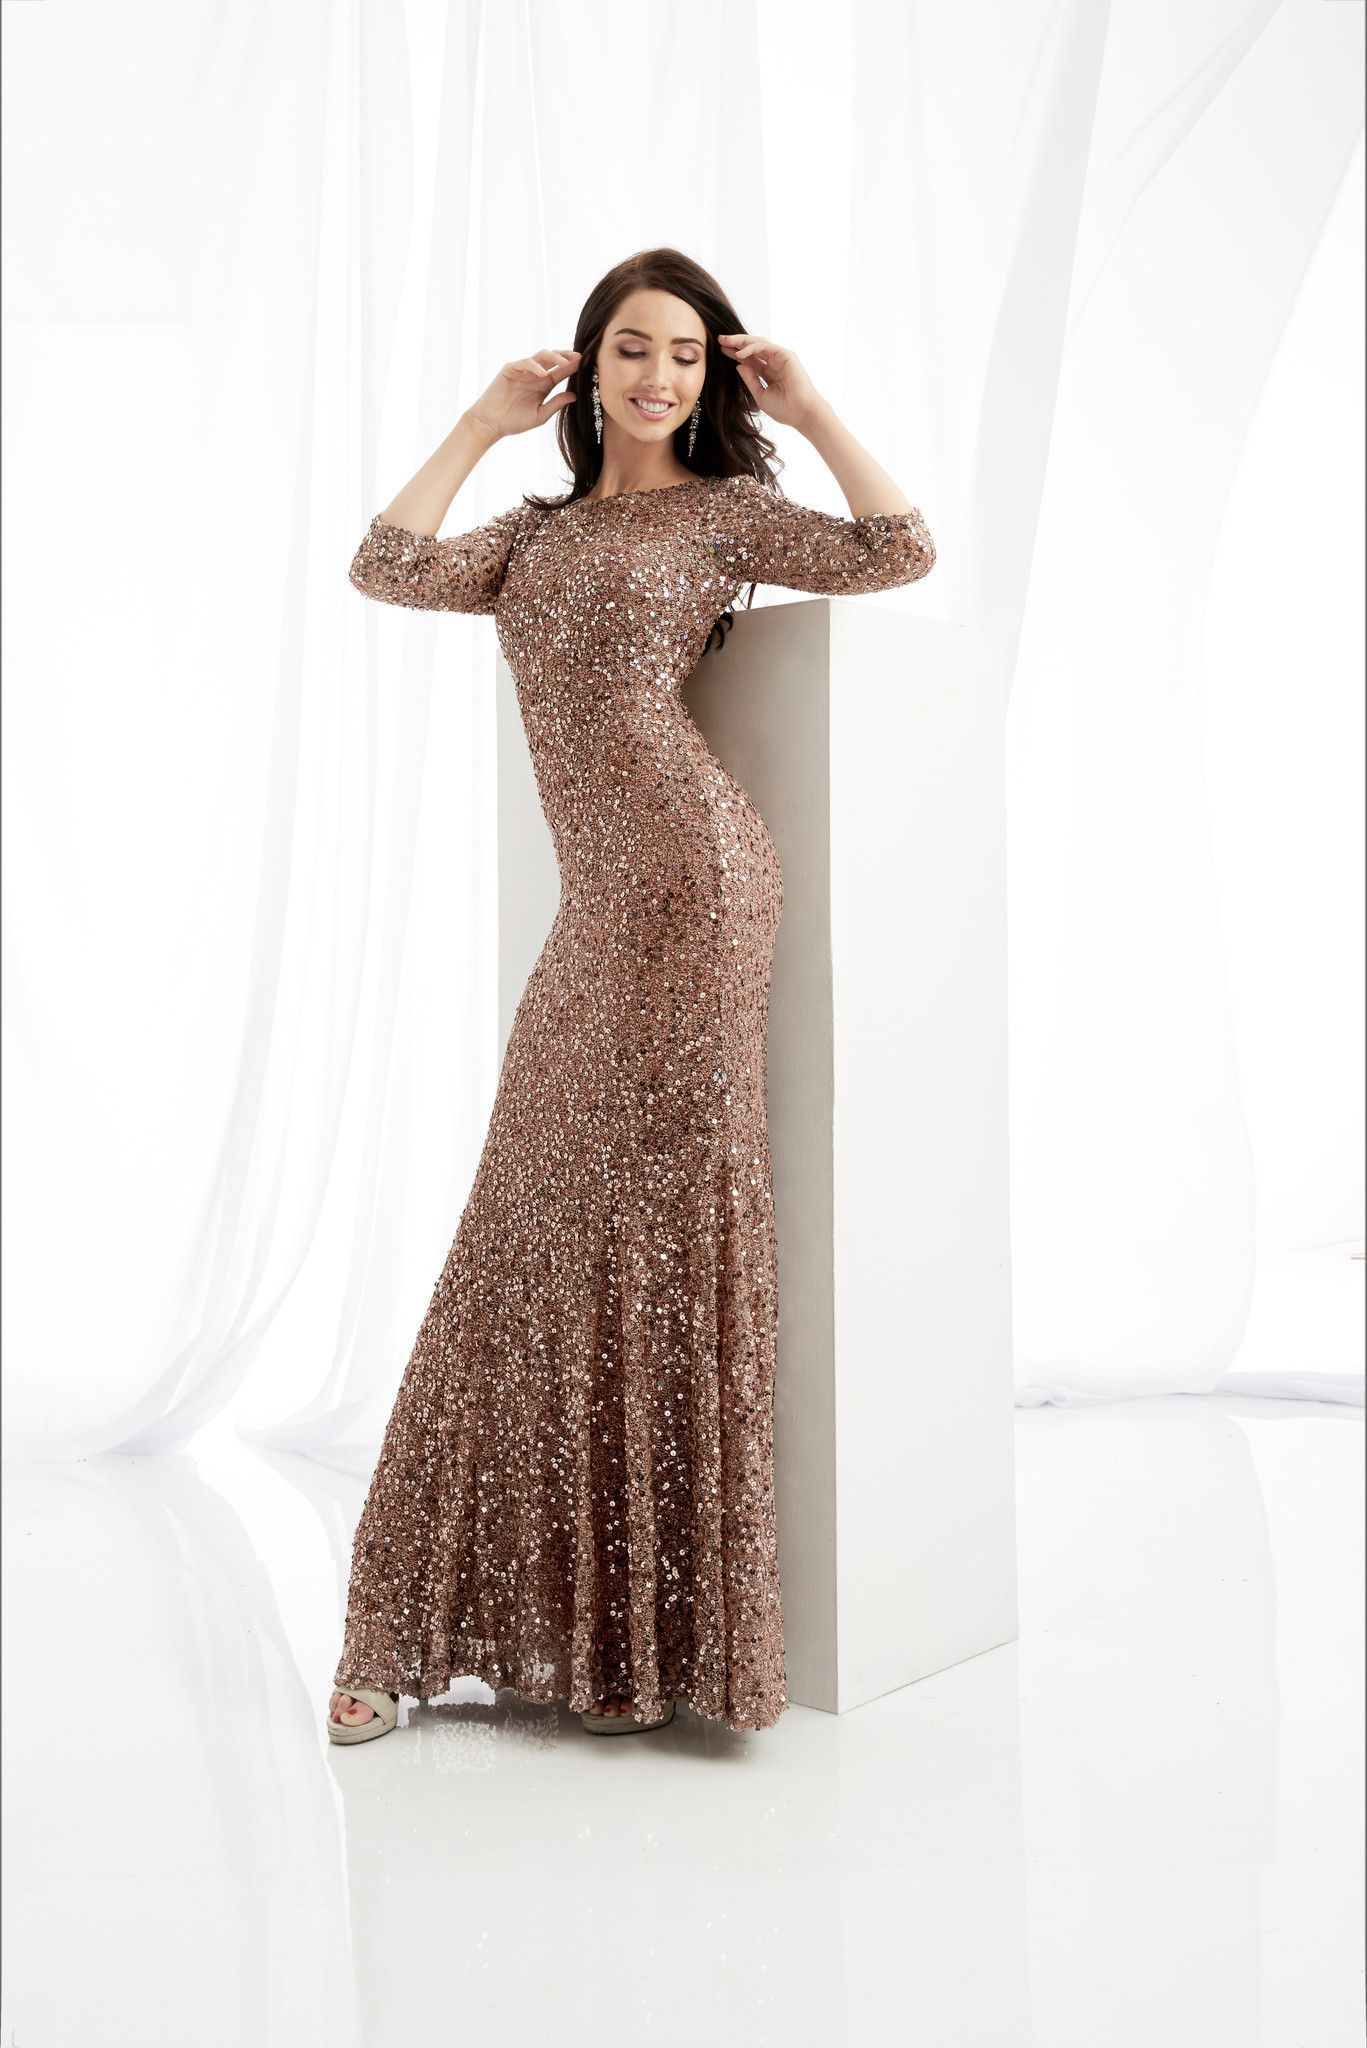 Jasz Couture 1363 Cinnamon Sleeved Open Back Prom Dress